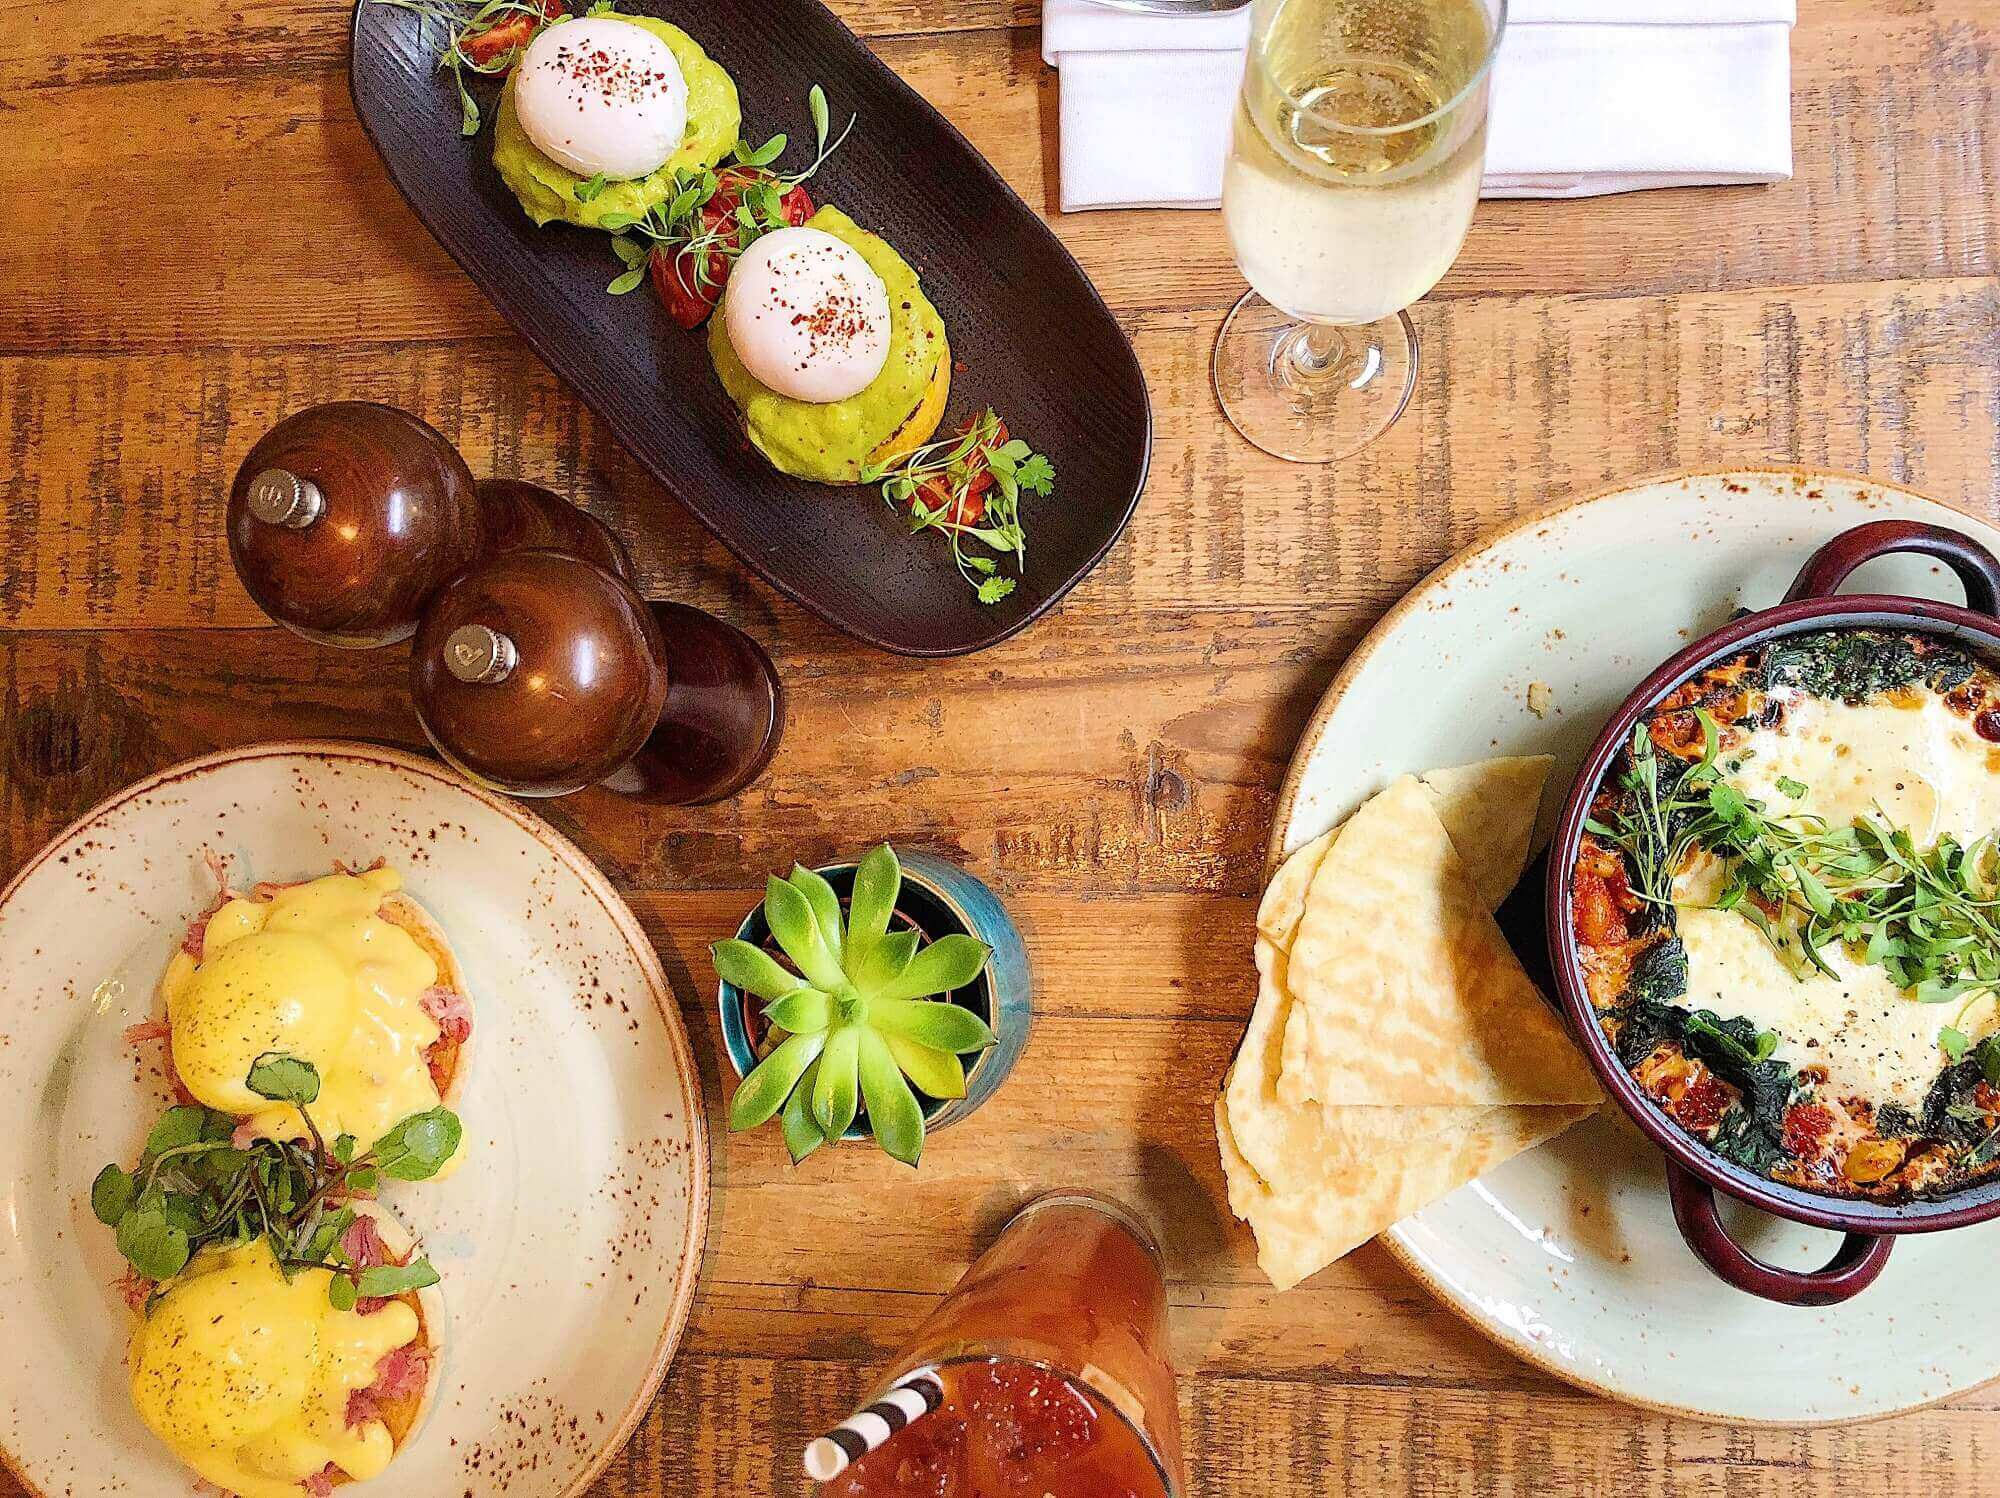 Mews of Mayfair Scrambled Eggs and Avocado and Shakshuka for Bottomless Brunch in London